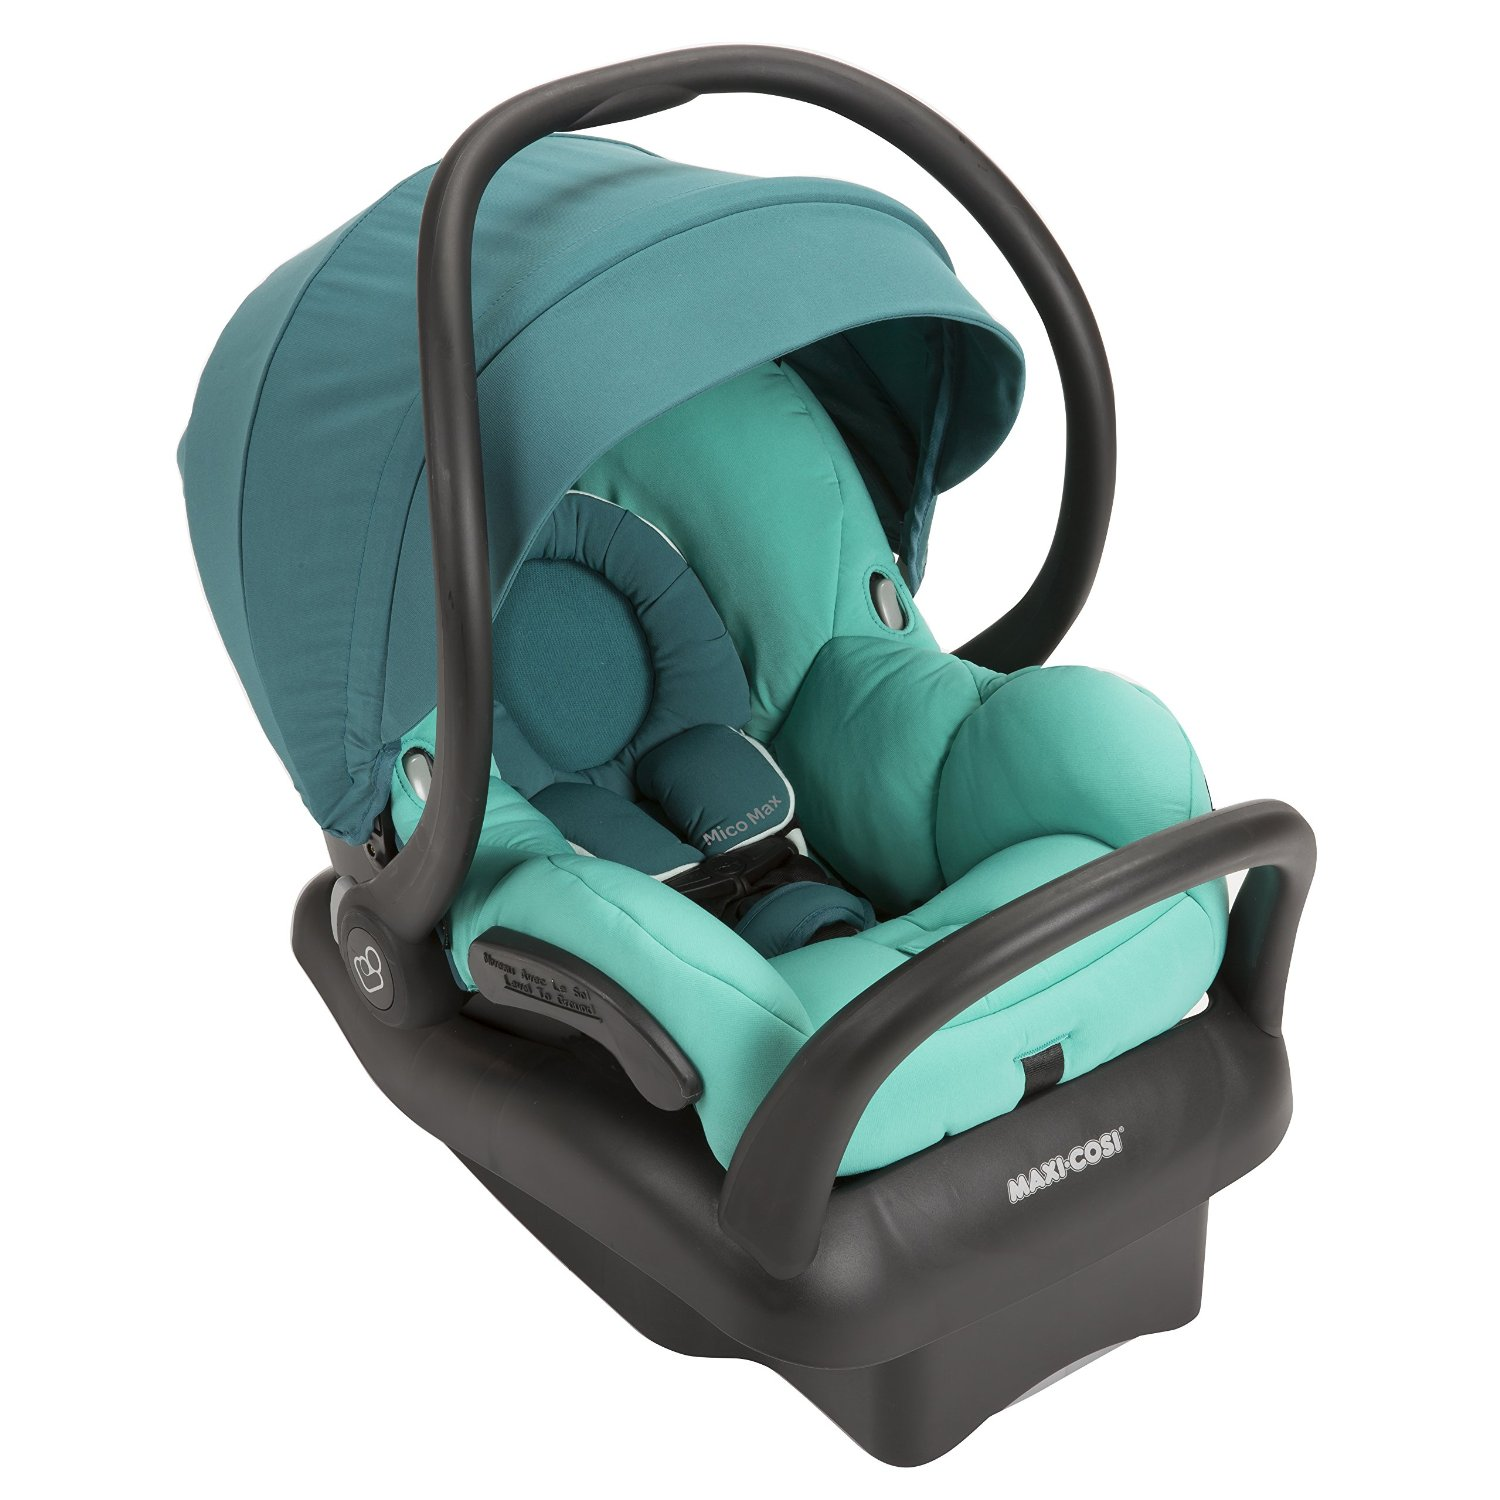 Maxi Cosi Mico Reviews